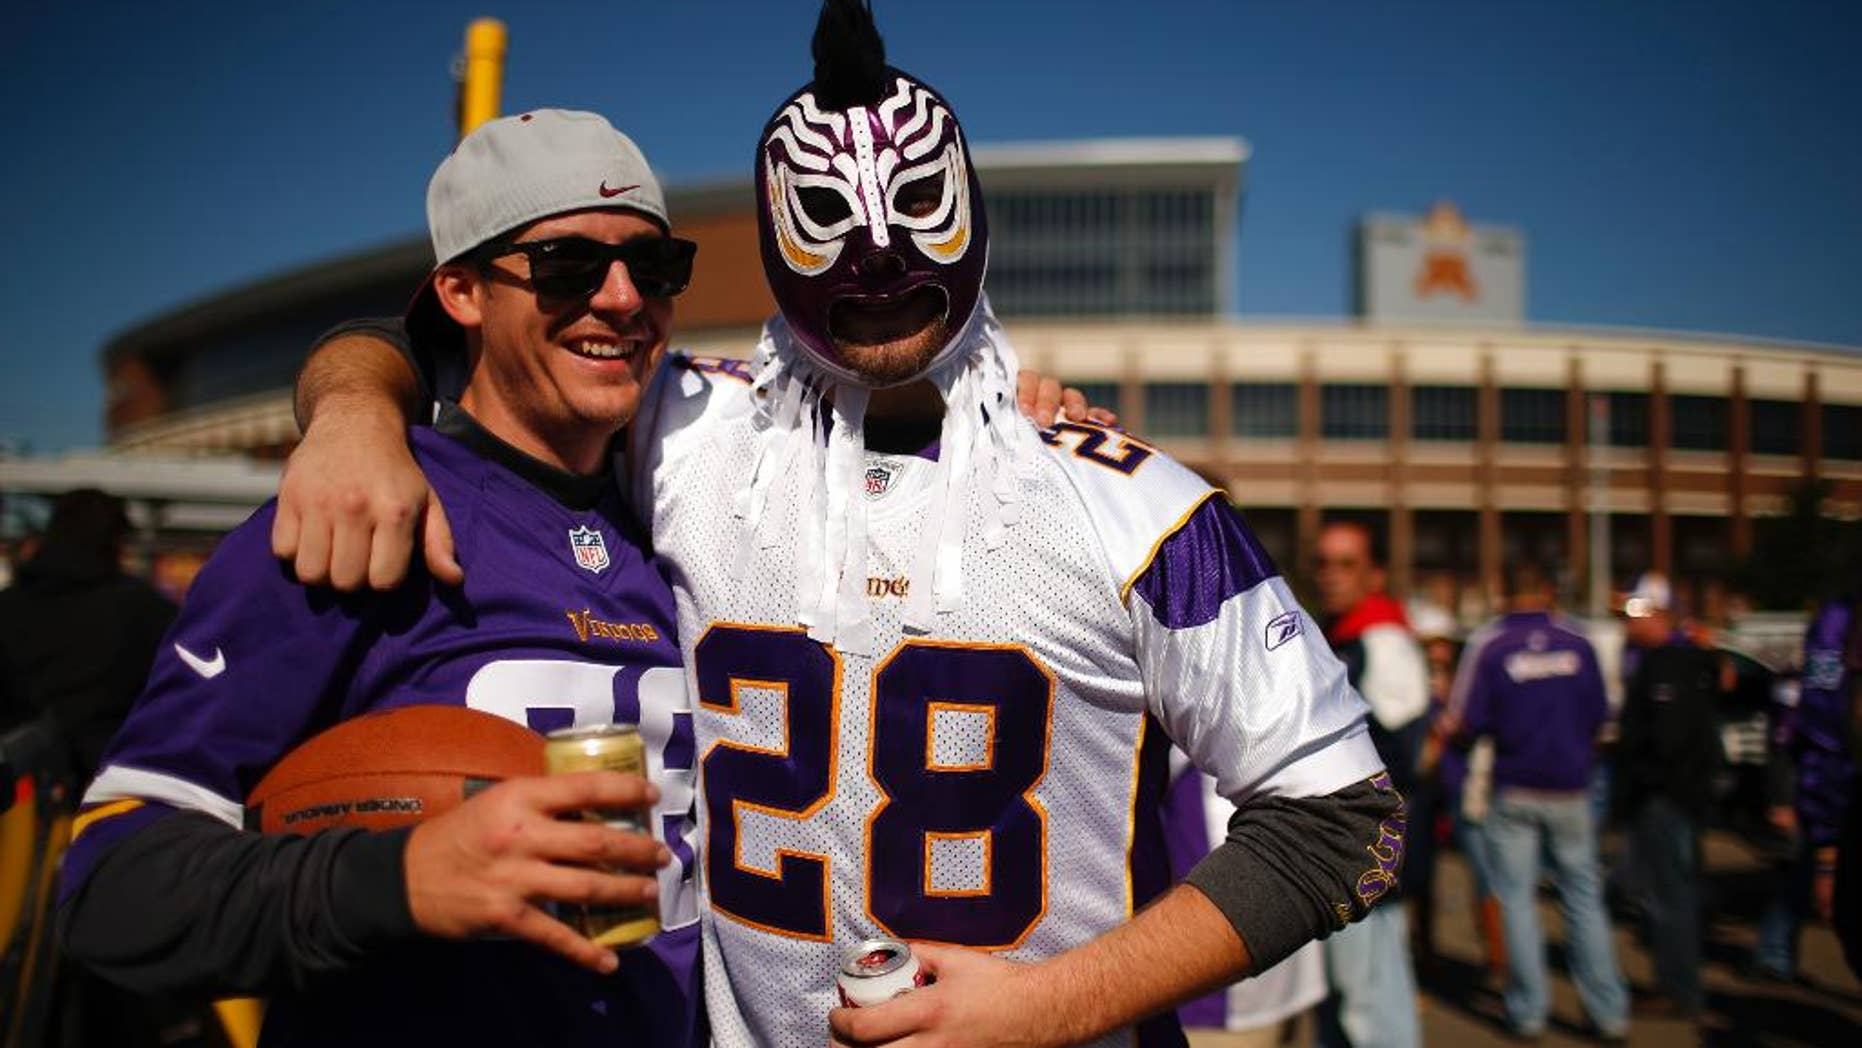 At Minnesota Vikings game, some fan views on Adrian Peterson abuse